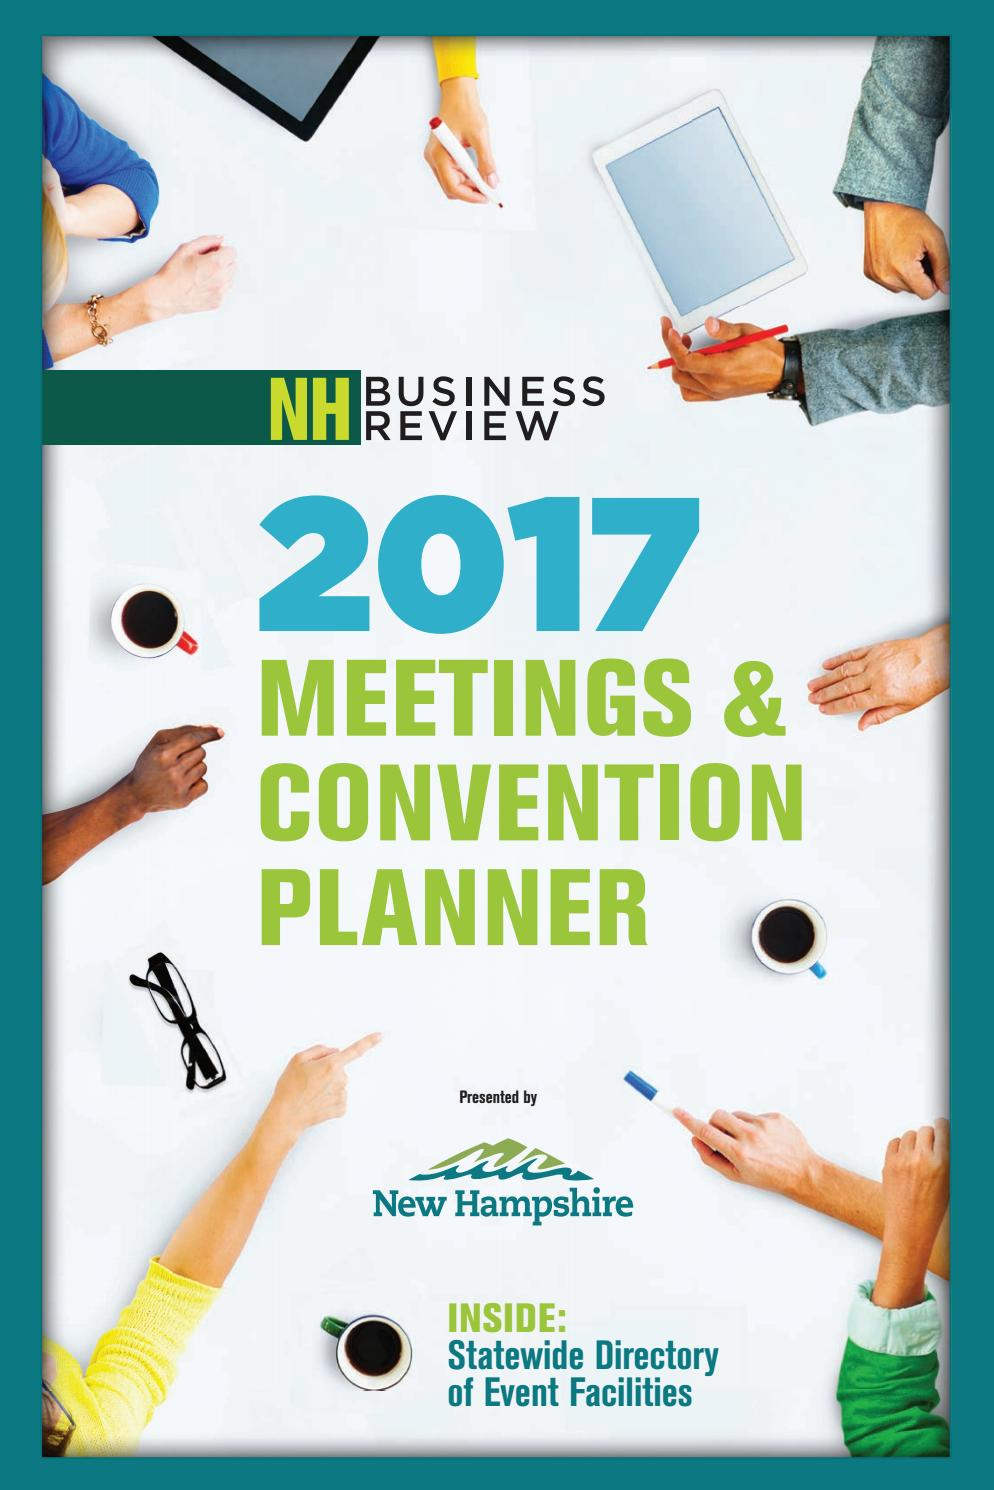 Nh meetings and conventions planner 2017 by mclean communications issuu